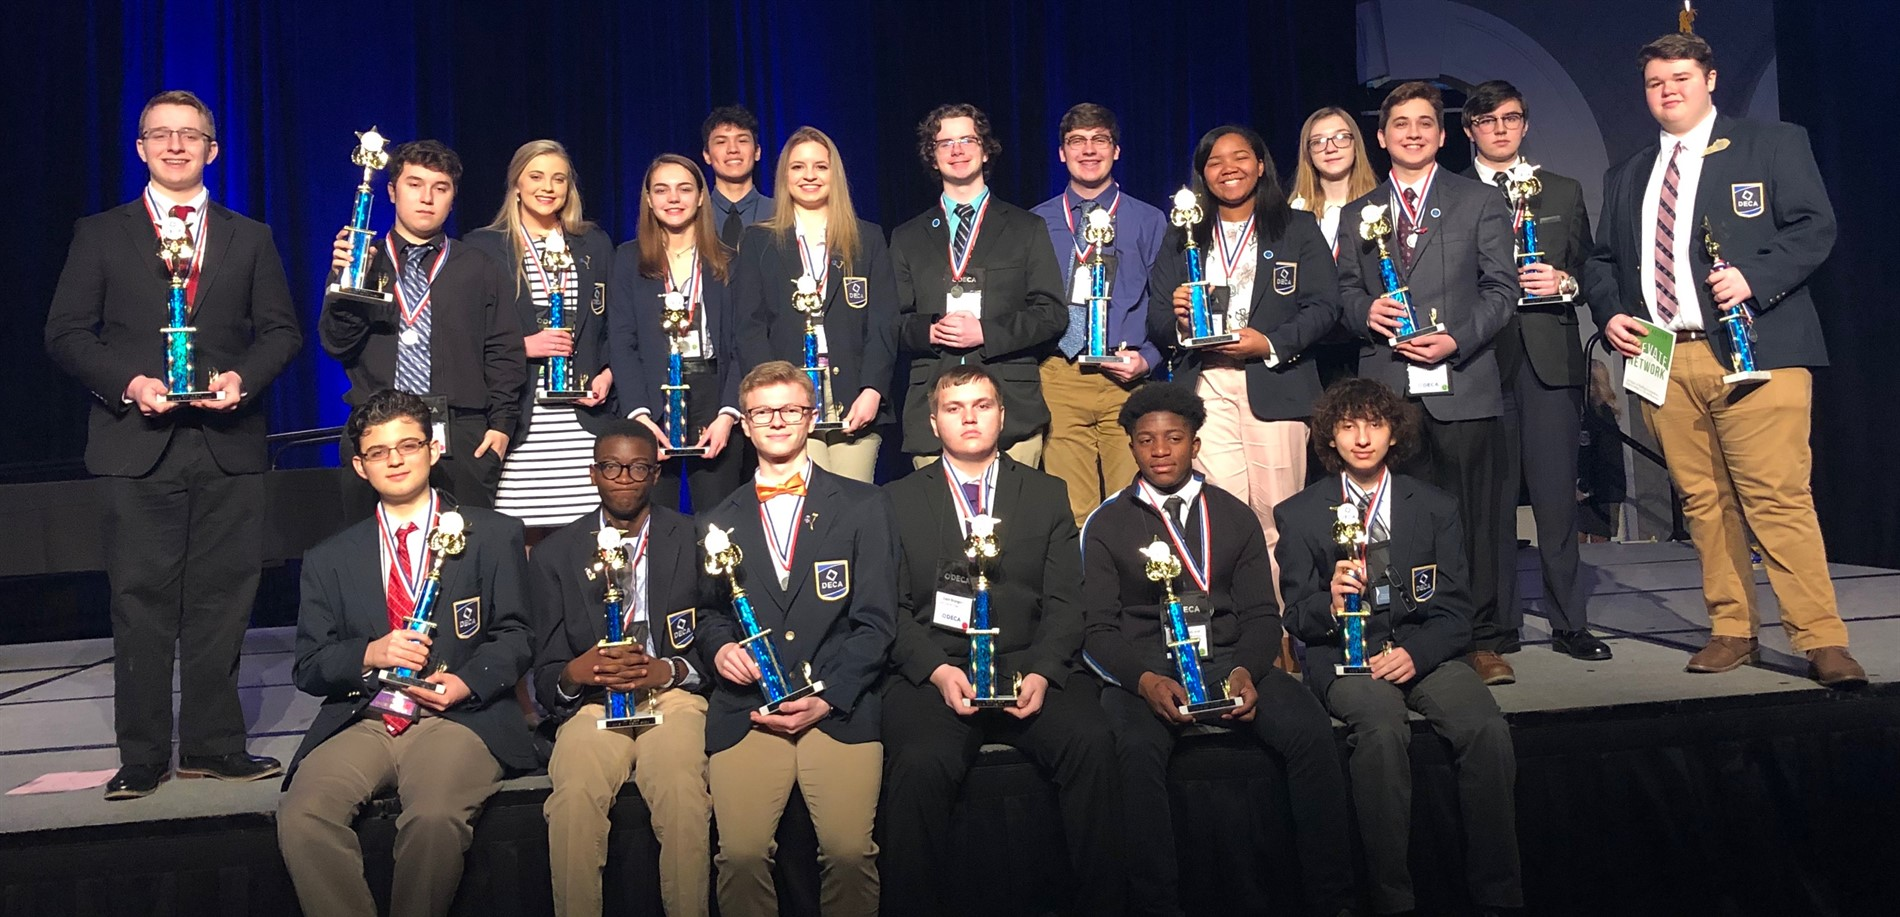 JHHS DECA students won BIG at DECA State. 17 members qualified for the international convention which will be held in Orlando, FLA.